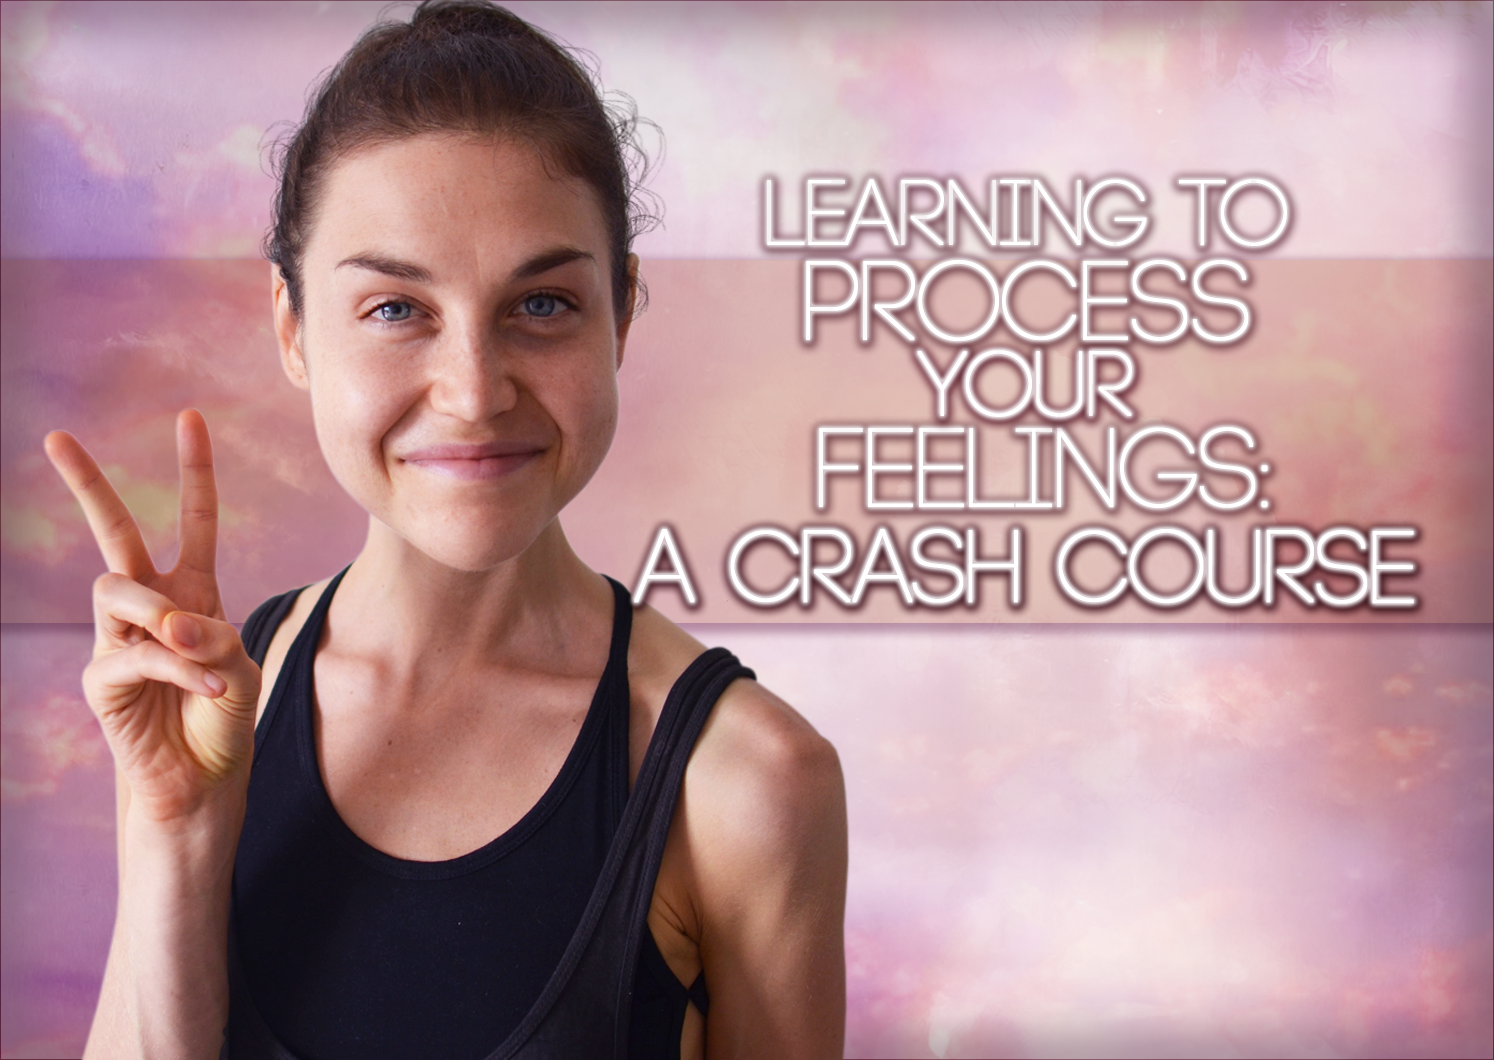 Learning To PROCESS Your FEELINGS: A Crash Course